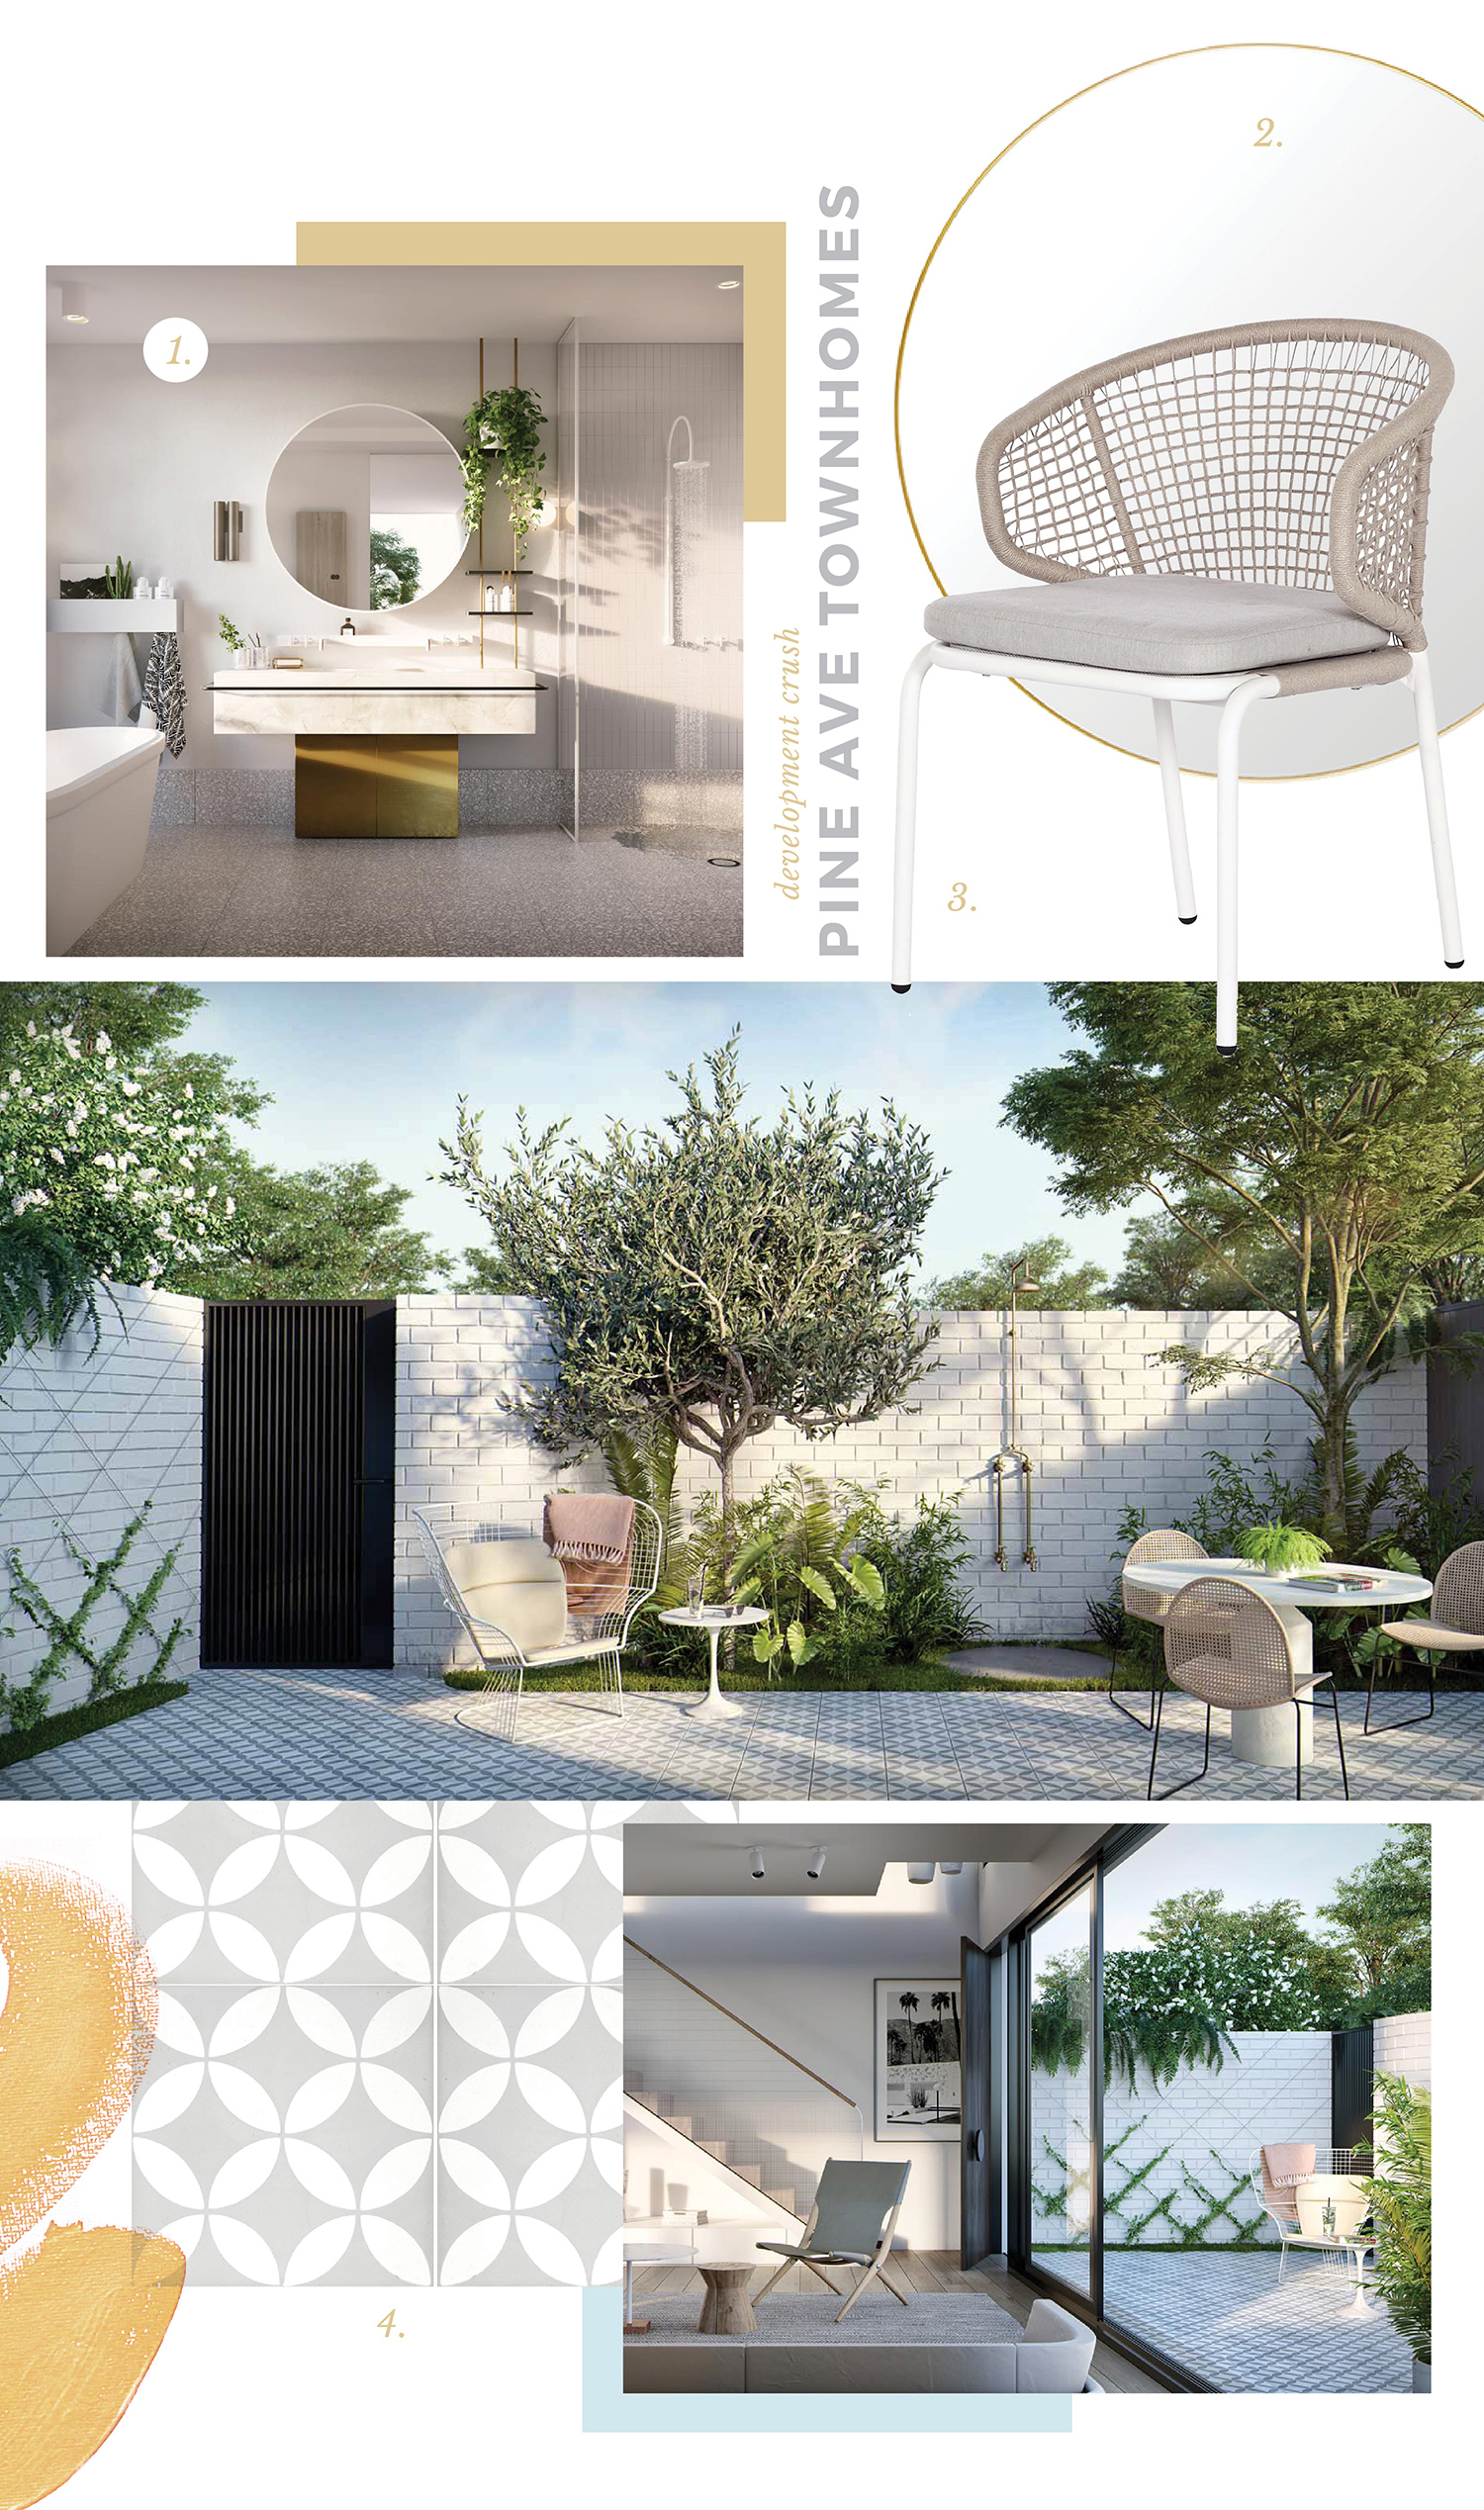 pine_ave_townhomes_melbourne_contemporary_monochromatic_greenery_stylish_uber_cool_interior_design.jpg